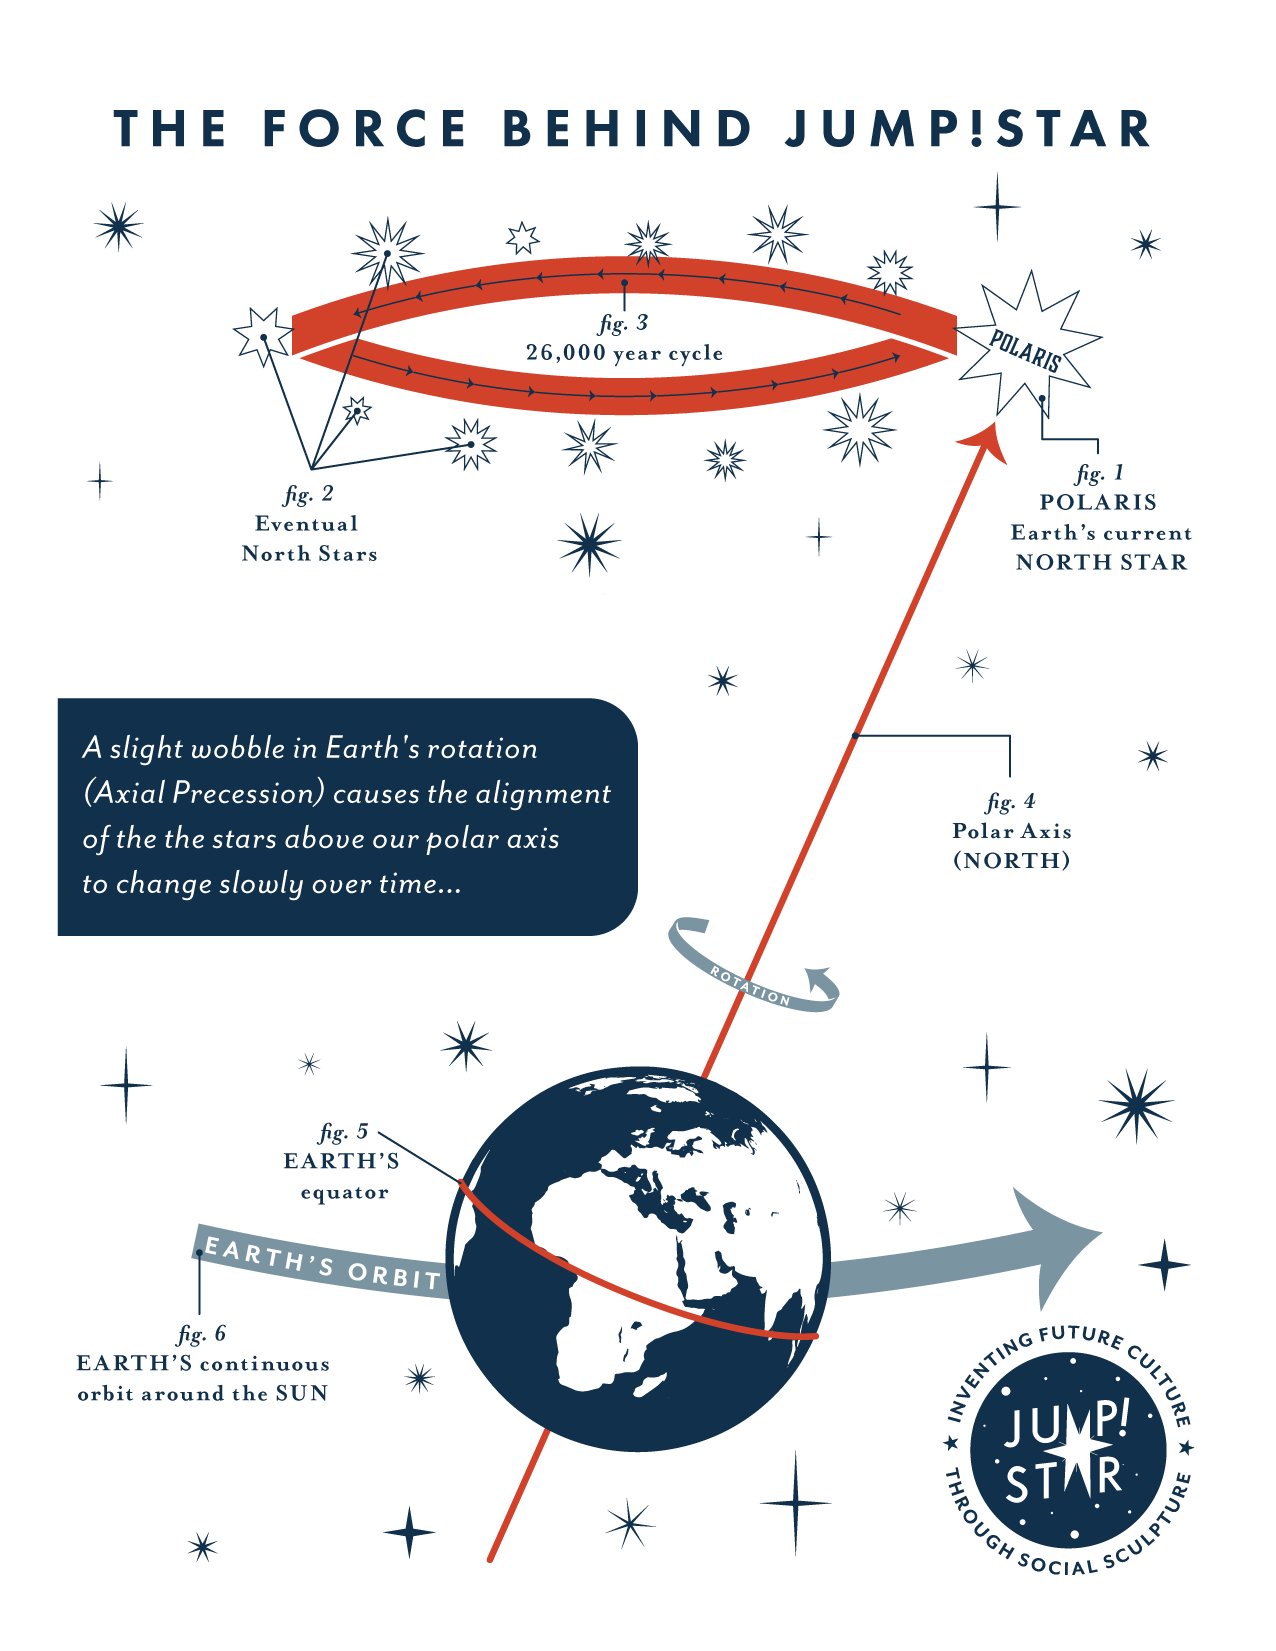 Diagram of axial precession by Madeline Baker, inspired by H.A. Rey.